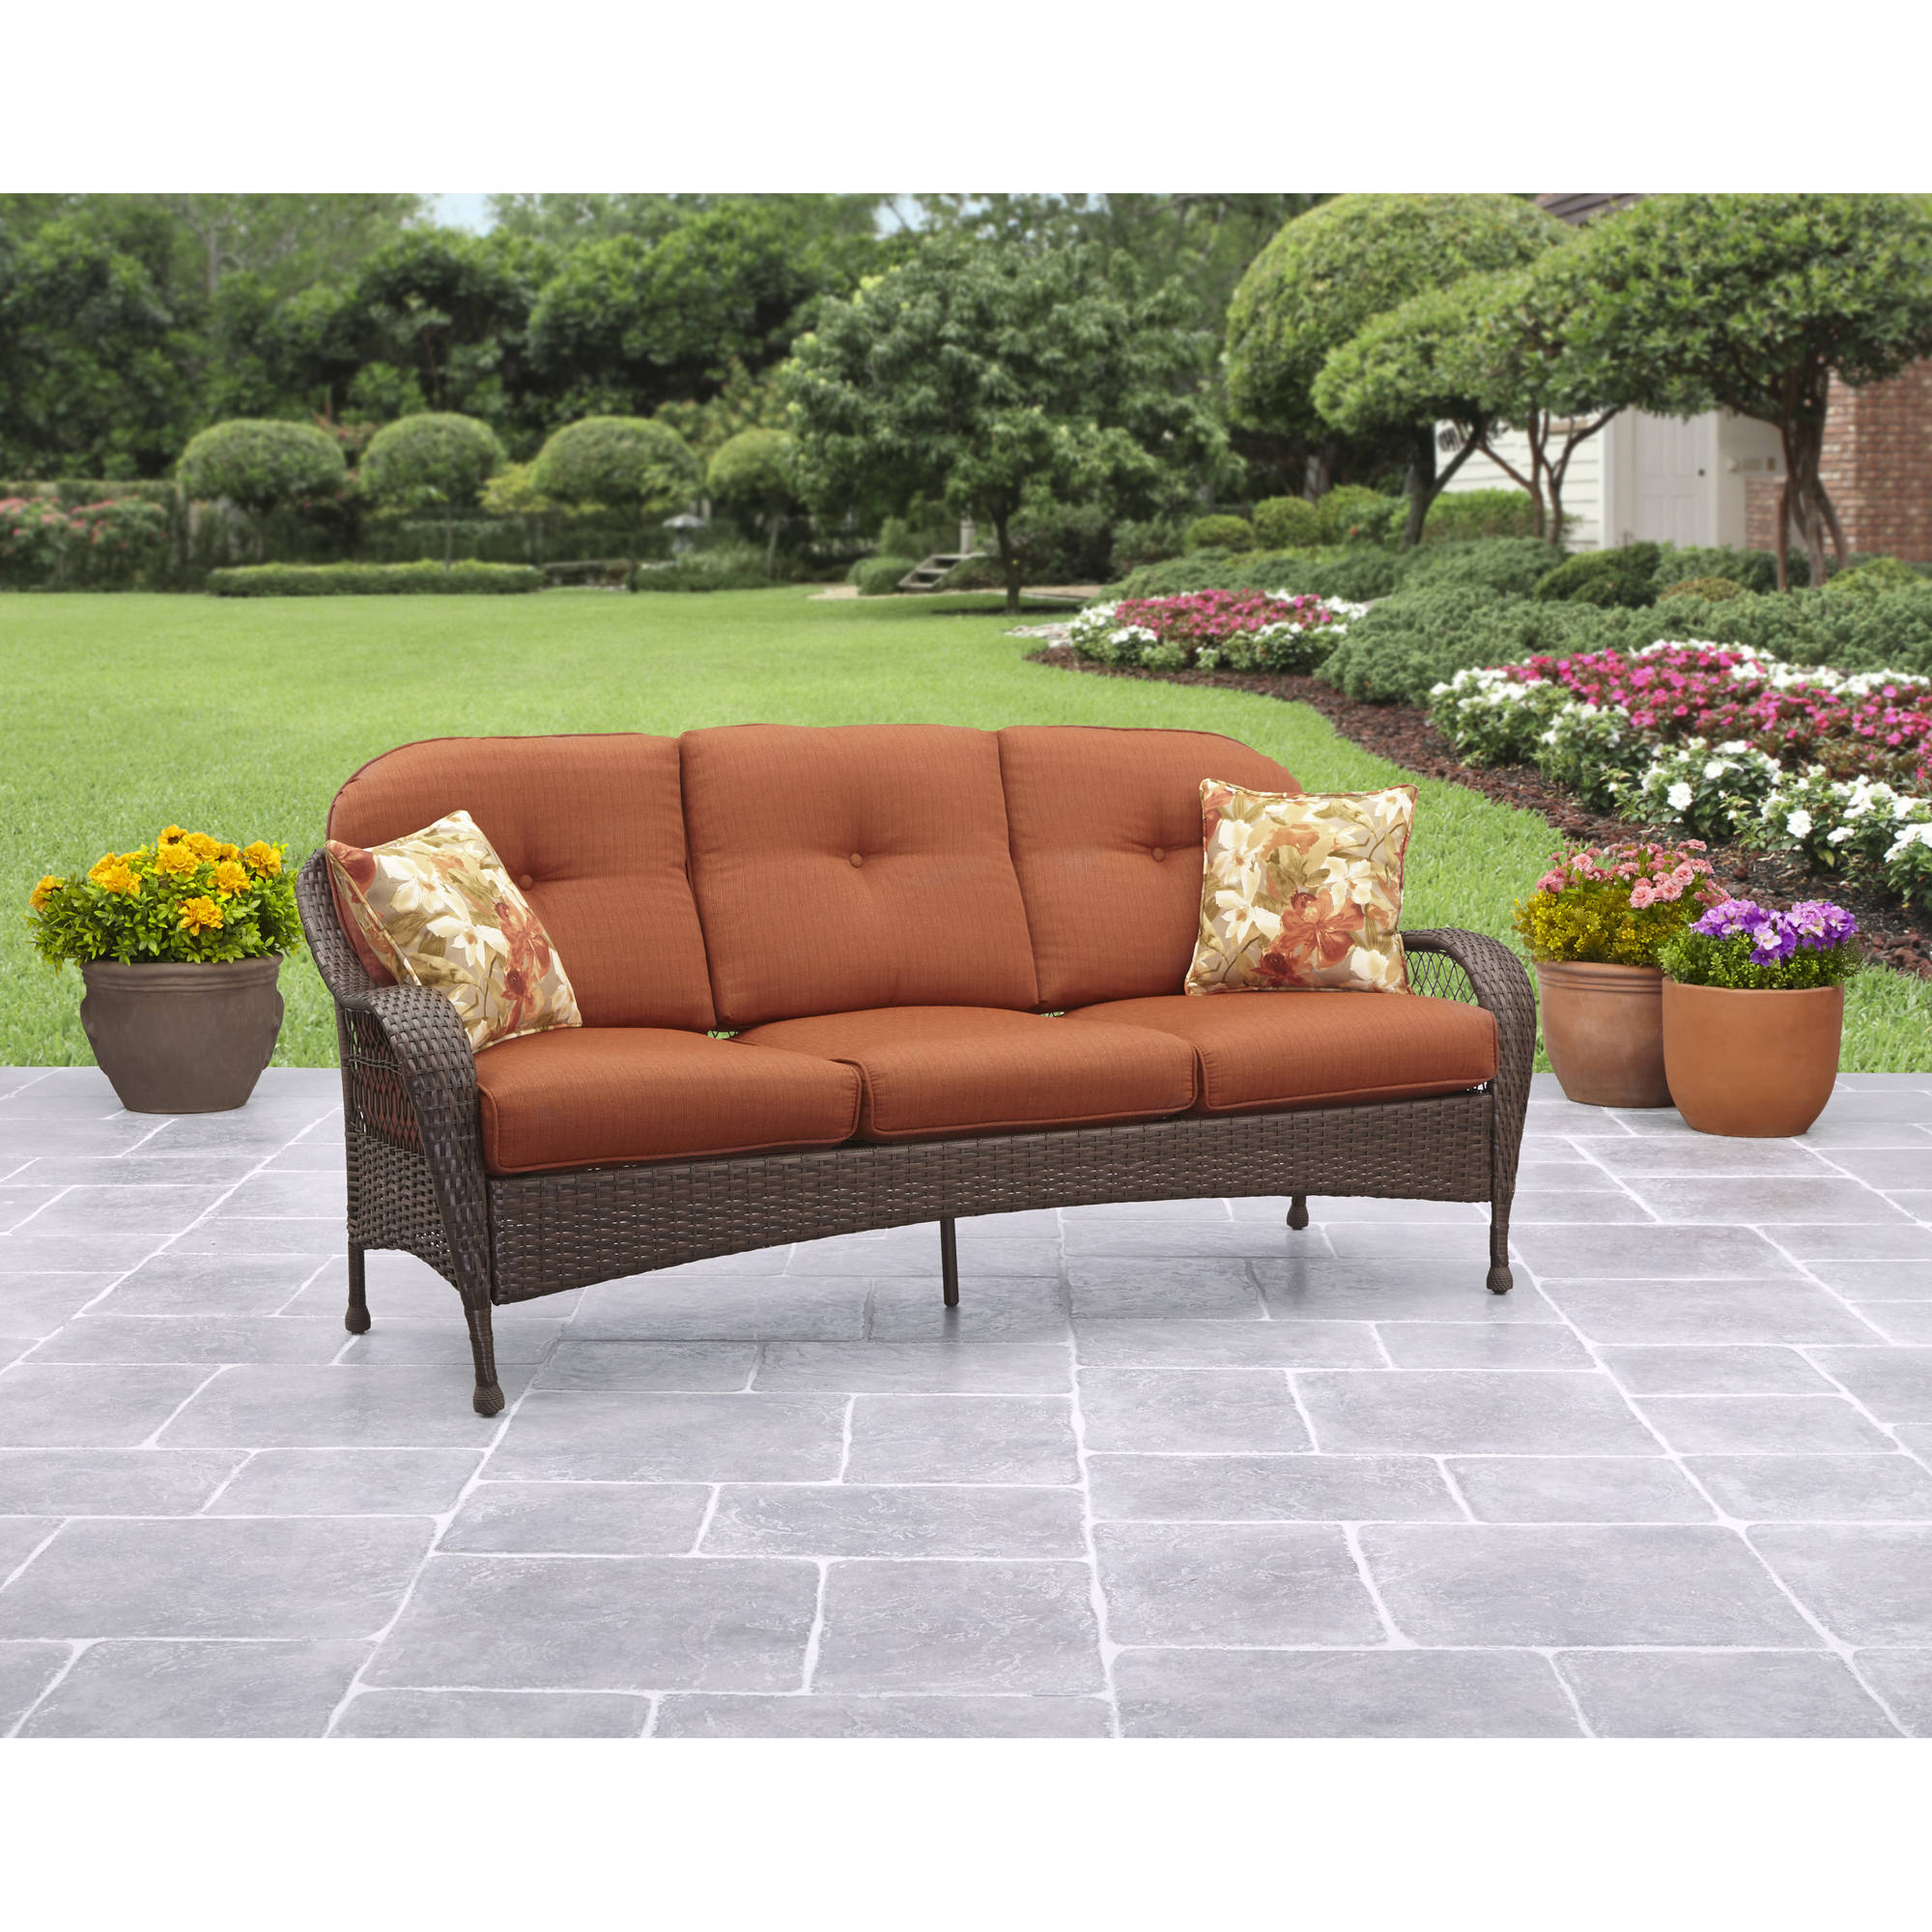 Great Better Homes And Gardens Cadence Wicker 3 Piece Outdoor Sectional Sofa Set,  Tan, Seats 5   Walmart.com Part 24